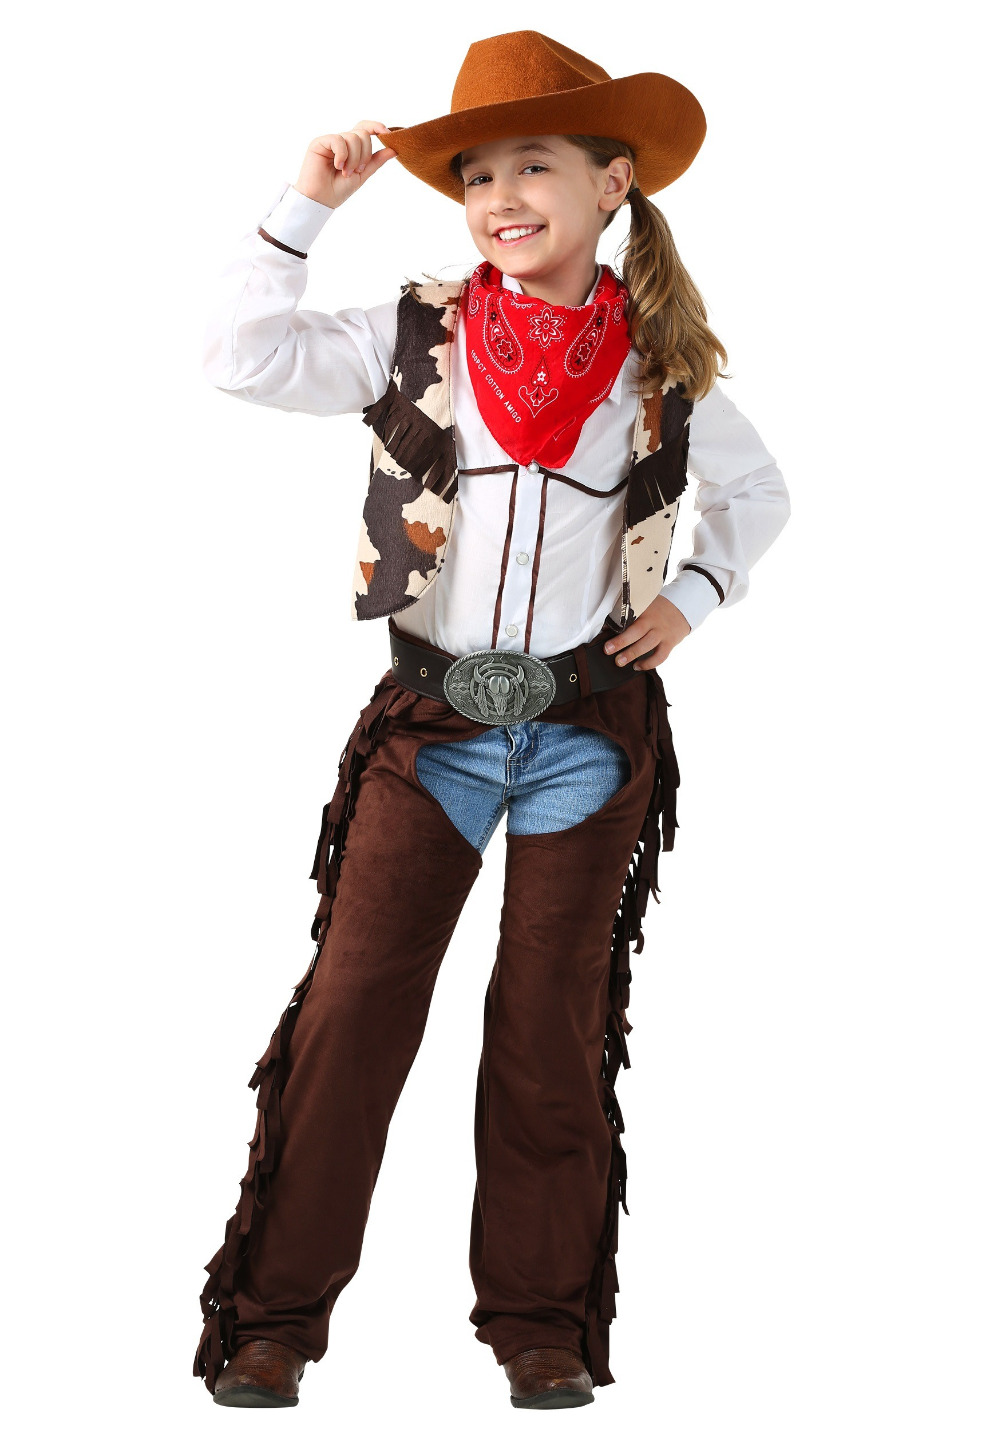 IREK hot cowgirl chaps party Halloween Costume new cosplay costume luruxy top quality performance clothing HY new 2015 cowgirl